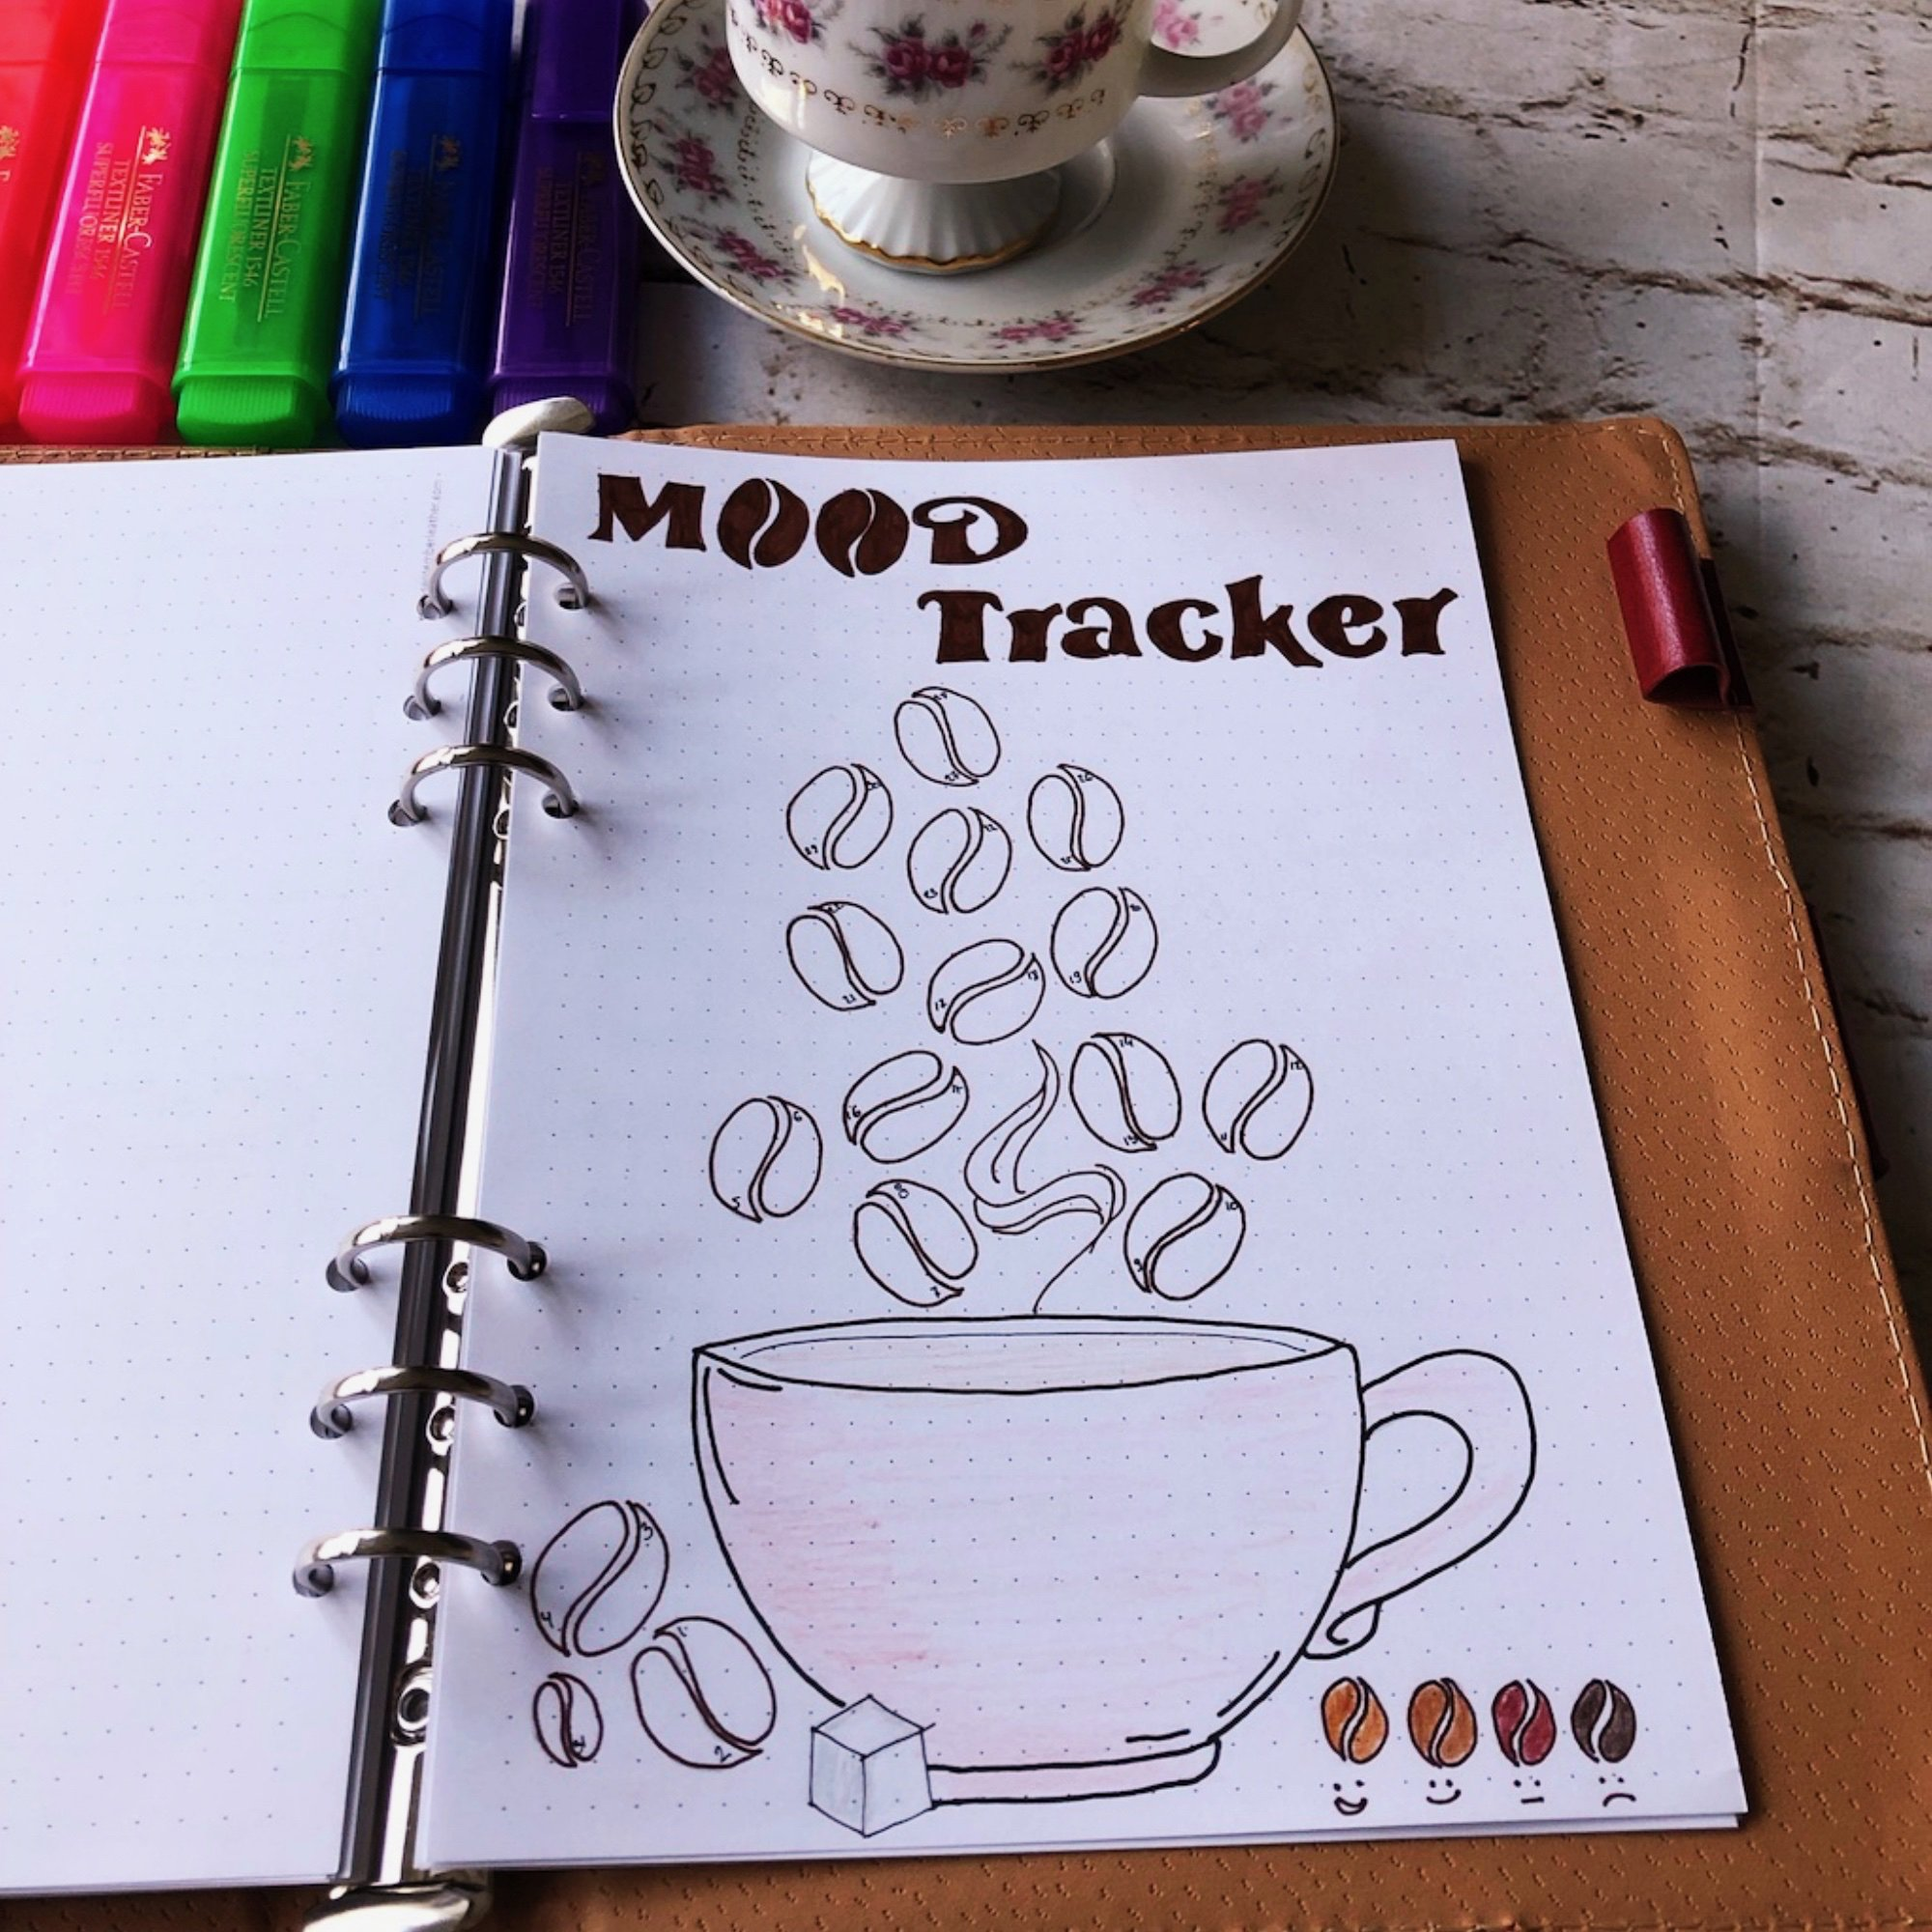 Creative journaling March 2019 - mood tracker - itstartswithacoffee.com #creativejournaling #March #planner #planning #moodtracker #tracker